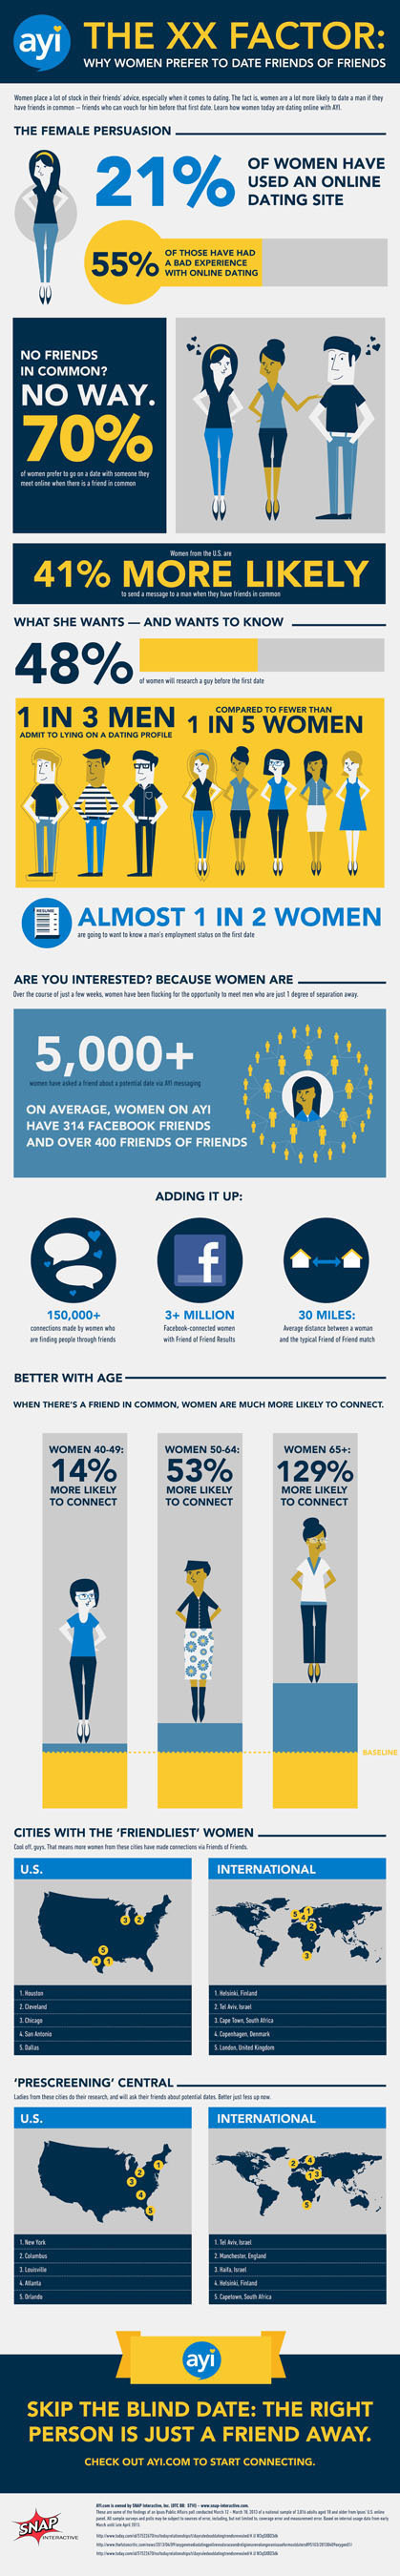 What Women Want:  Women On AYI Are 41% More Likely To Start A Conversation With A Man When They